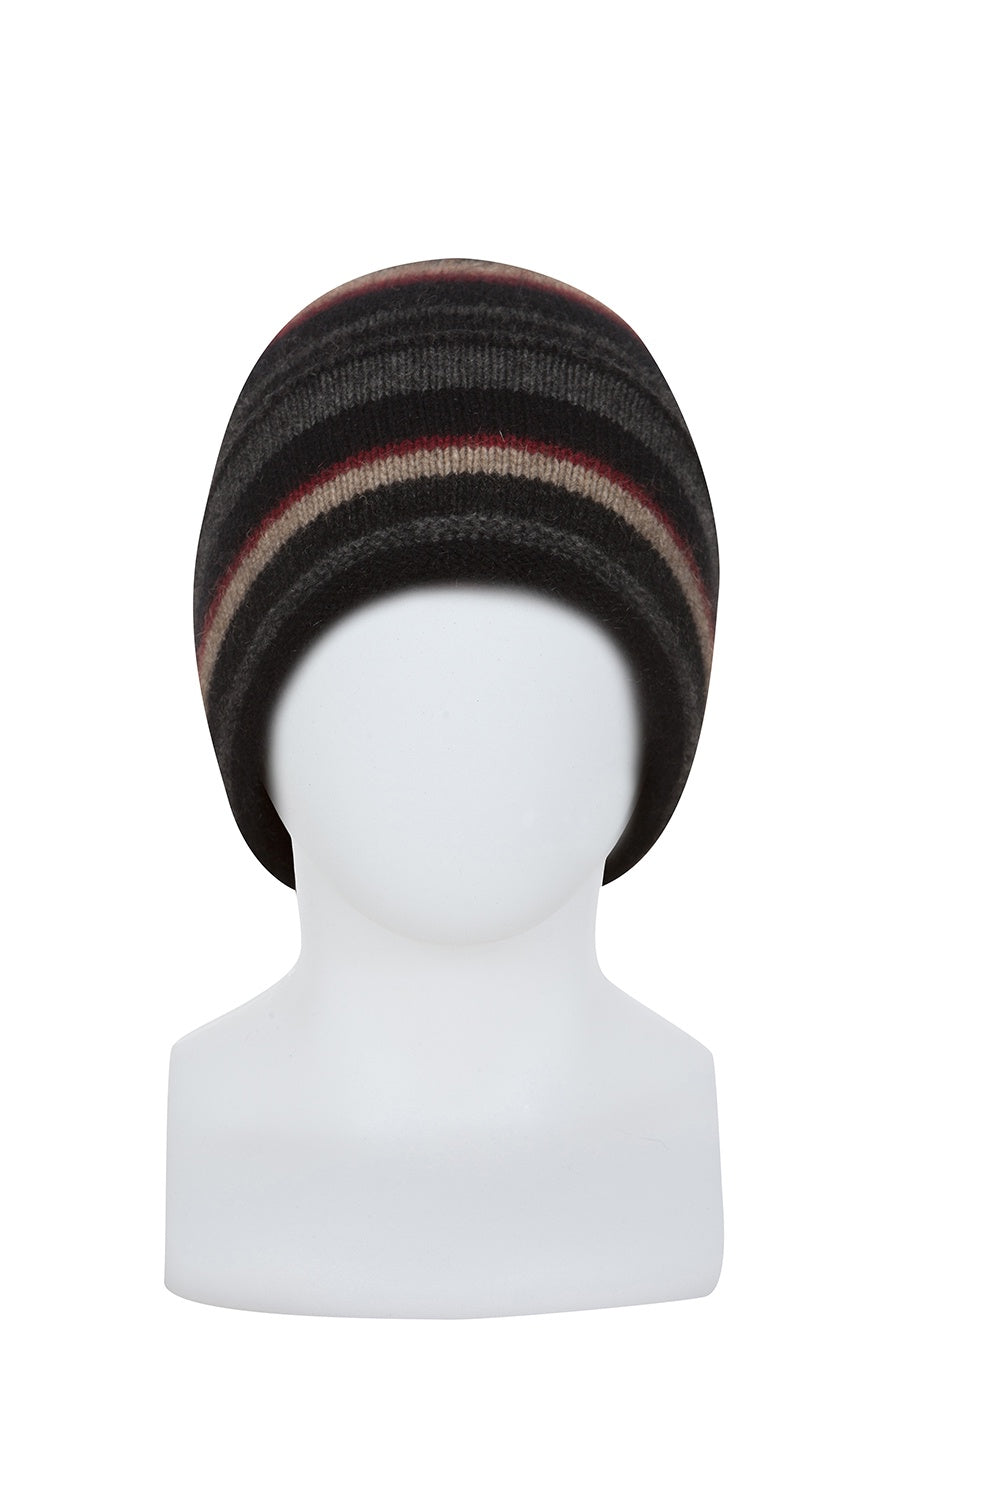 NX201 Striped Beanie